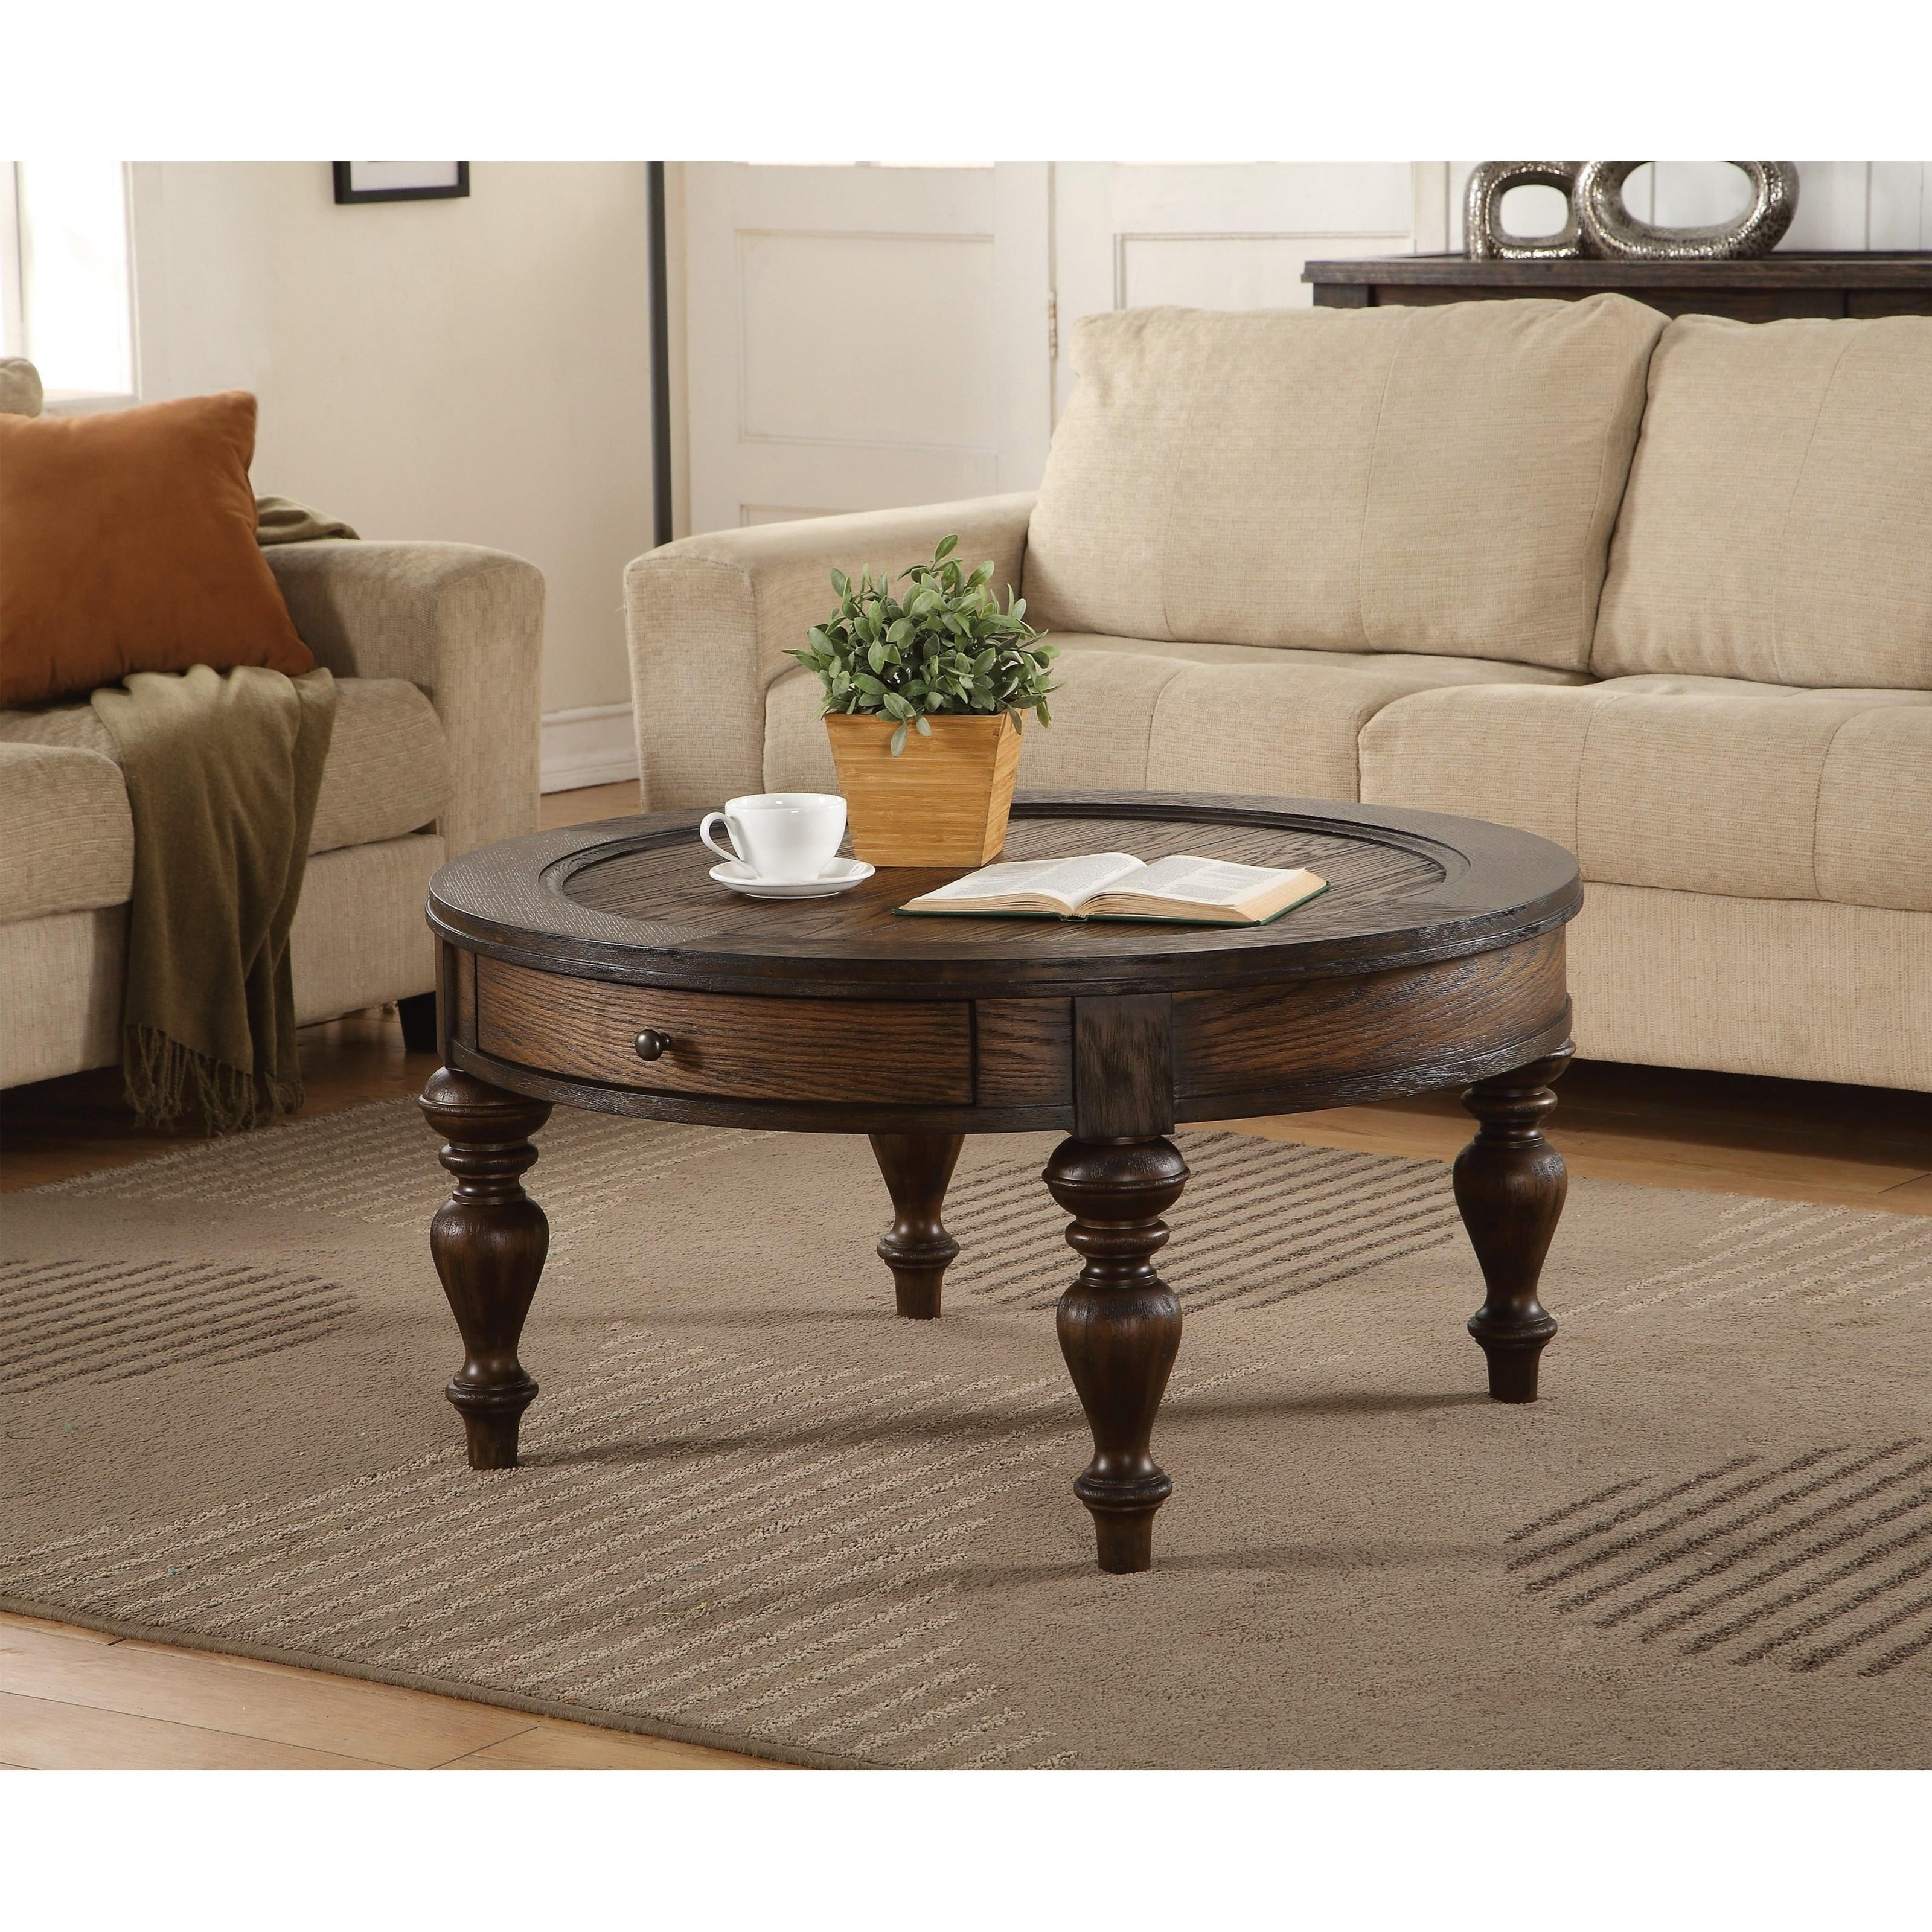 flexsteel wynwood collection bordeaux traditional round cocktail table with drawer mueller. Black Bedroom Furniture Sets. Home Design Ideas